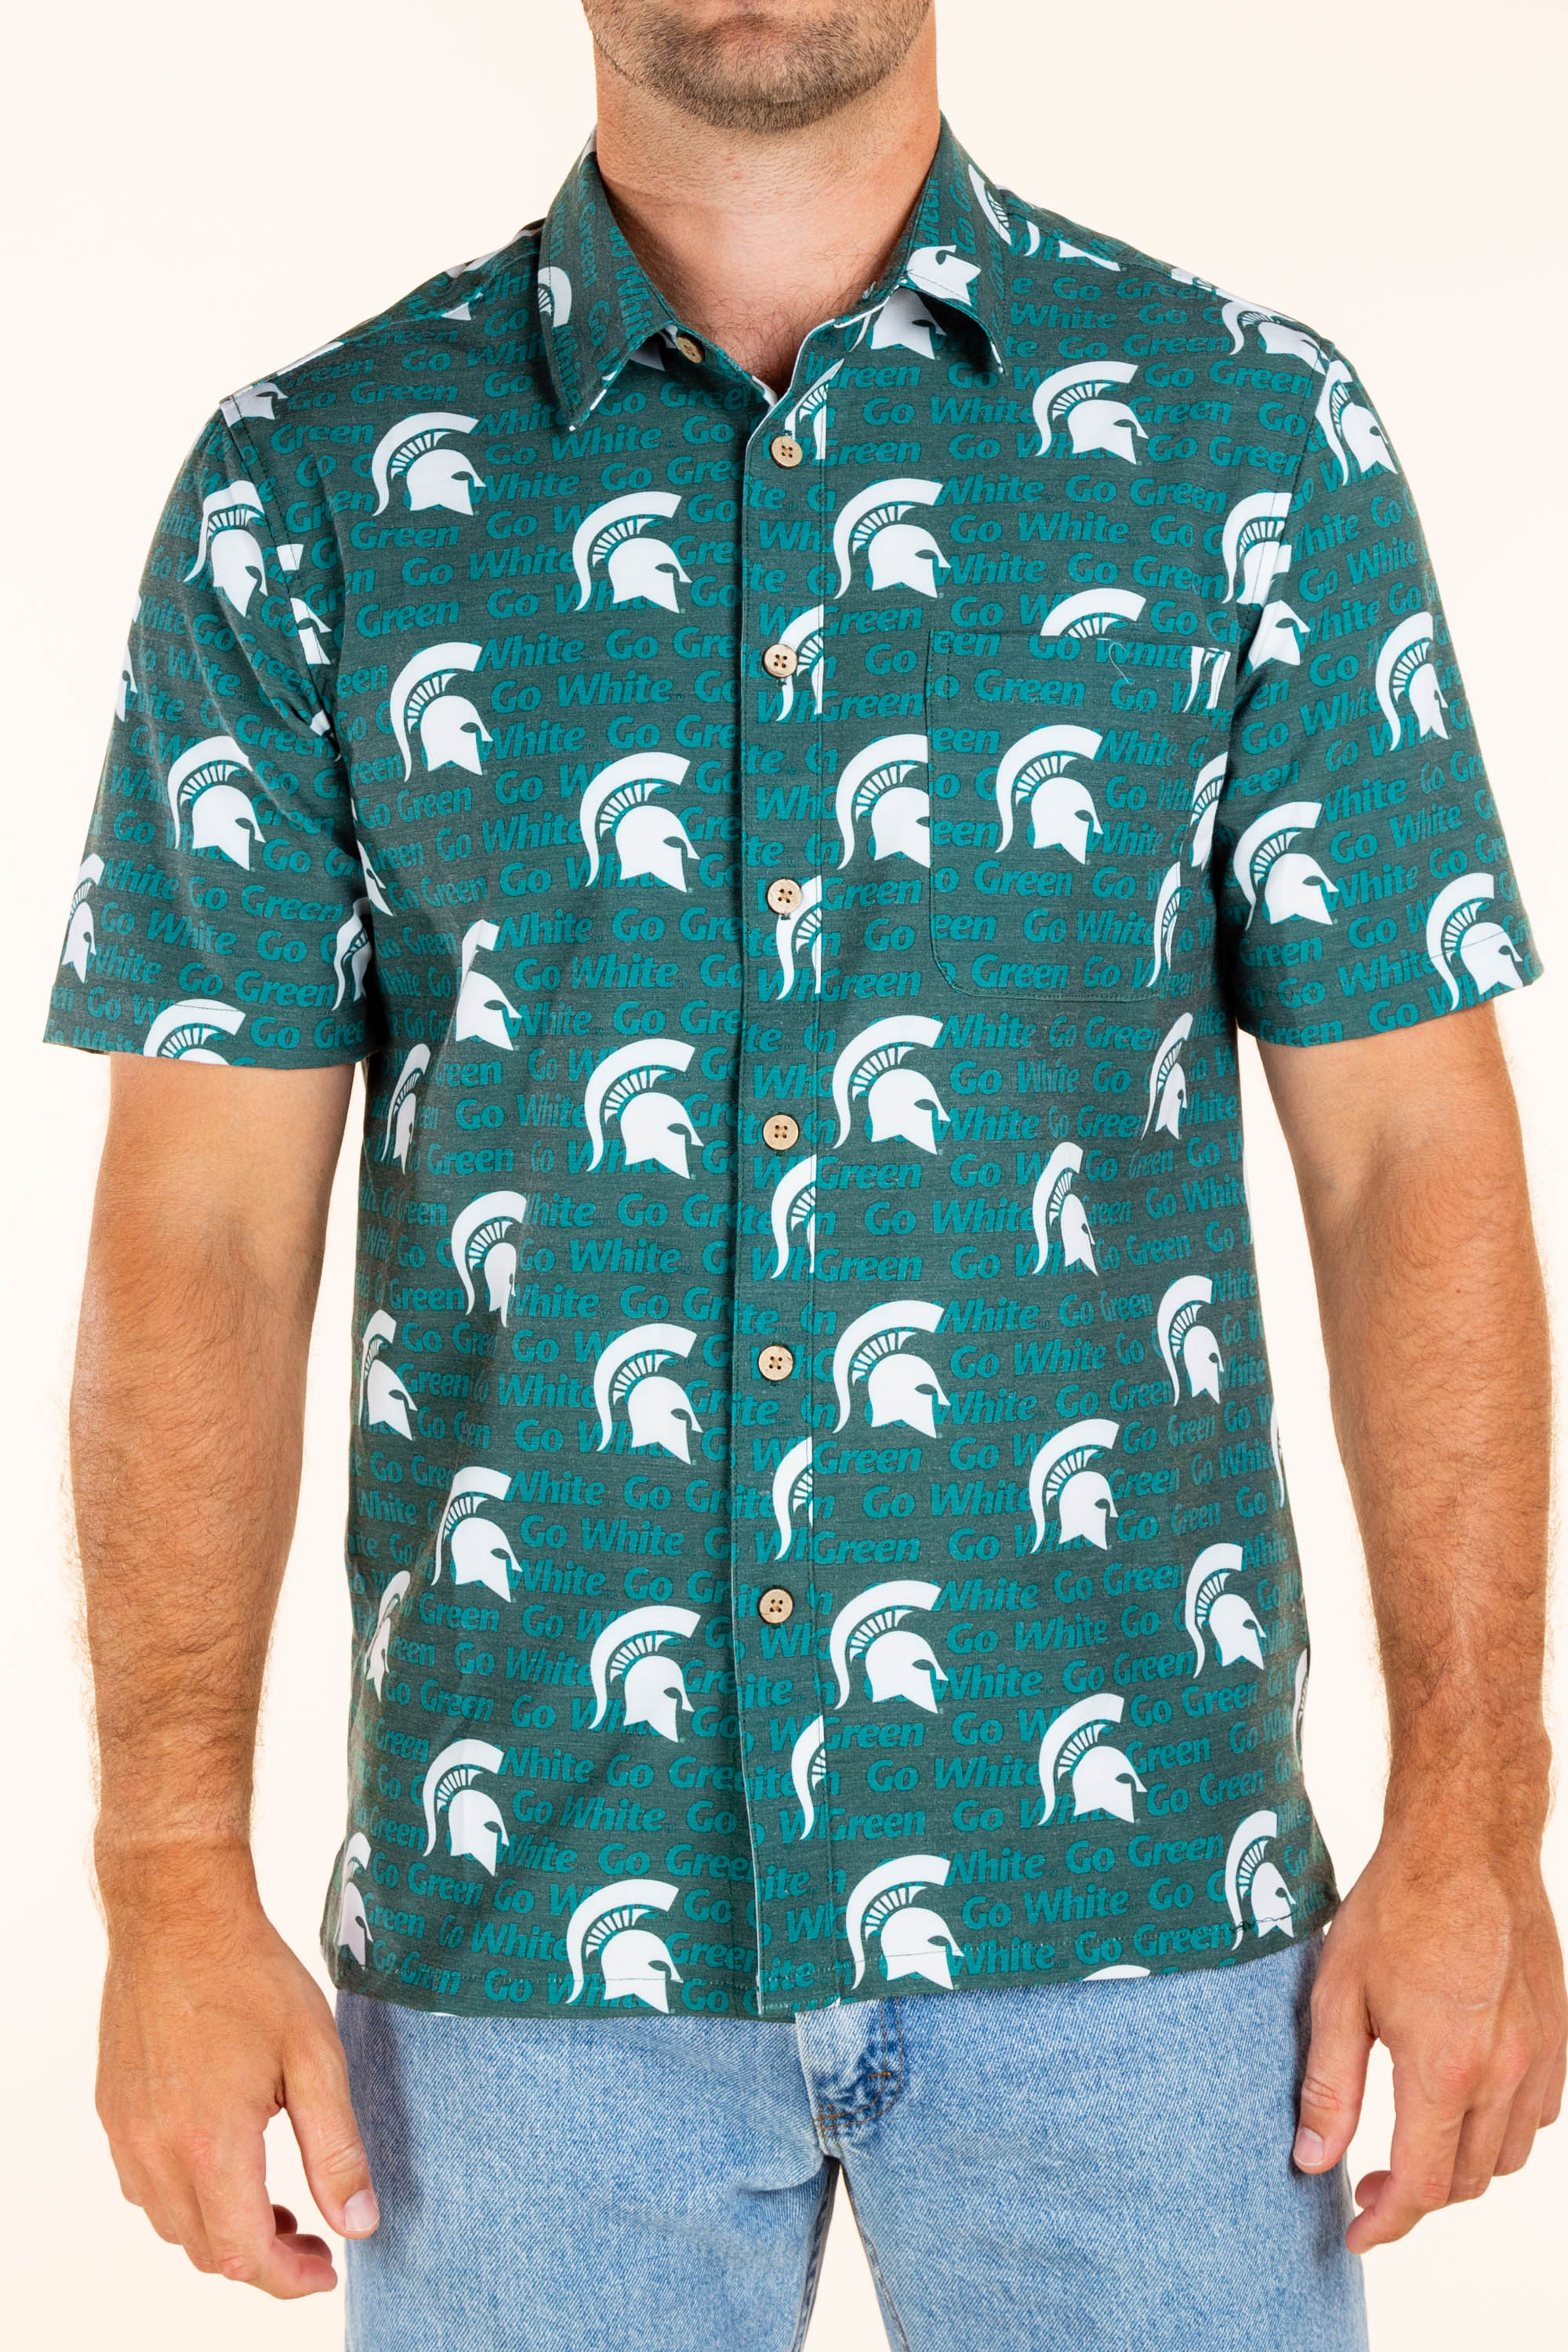 Michigan State Button Up Game Day Shirt